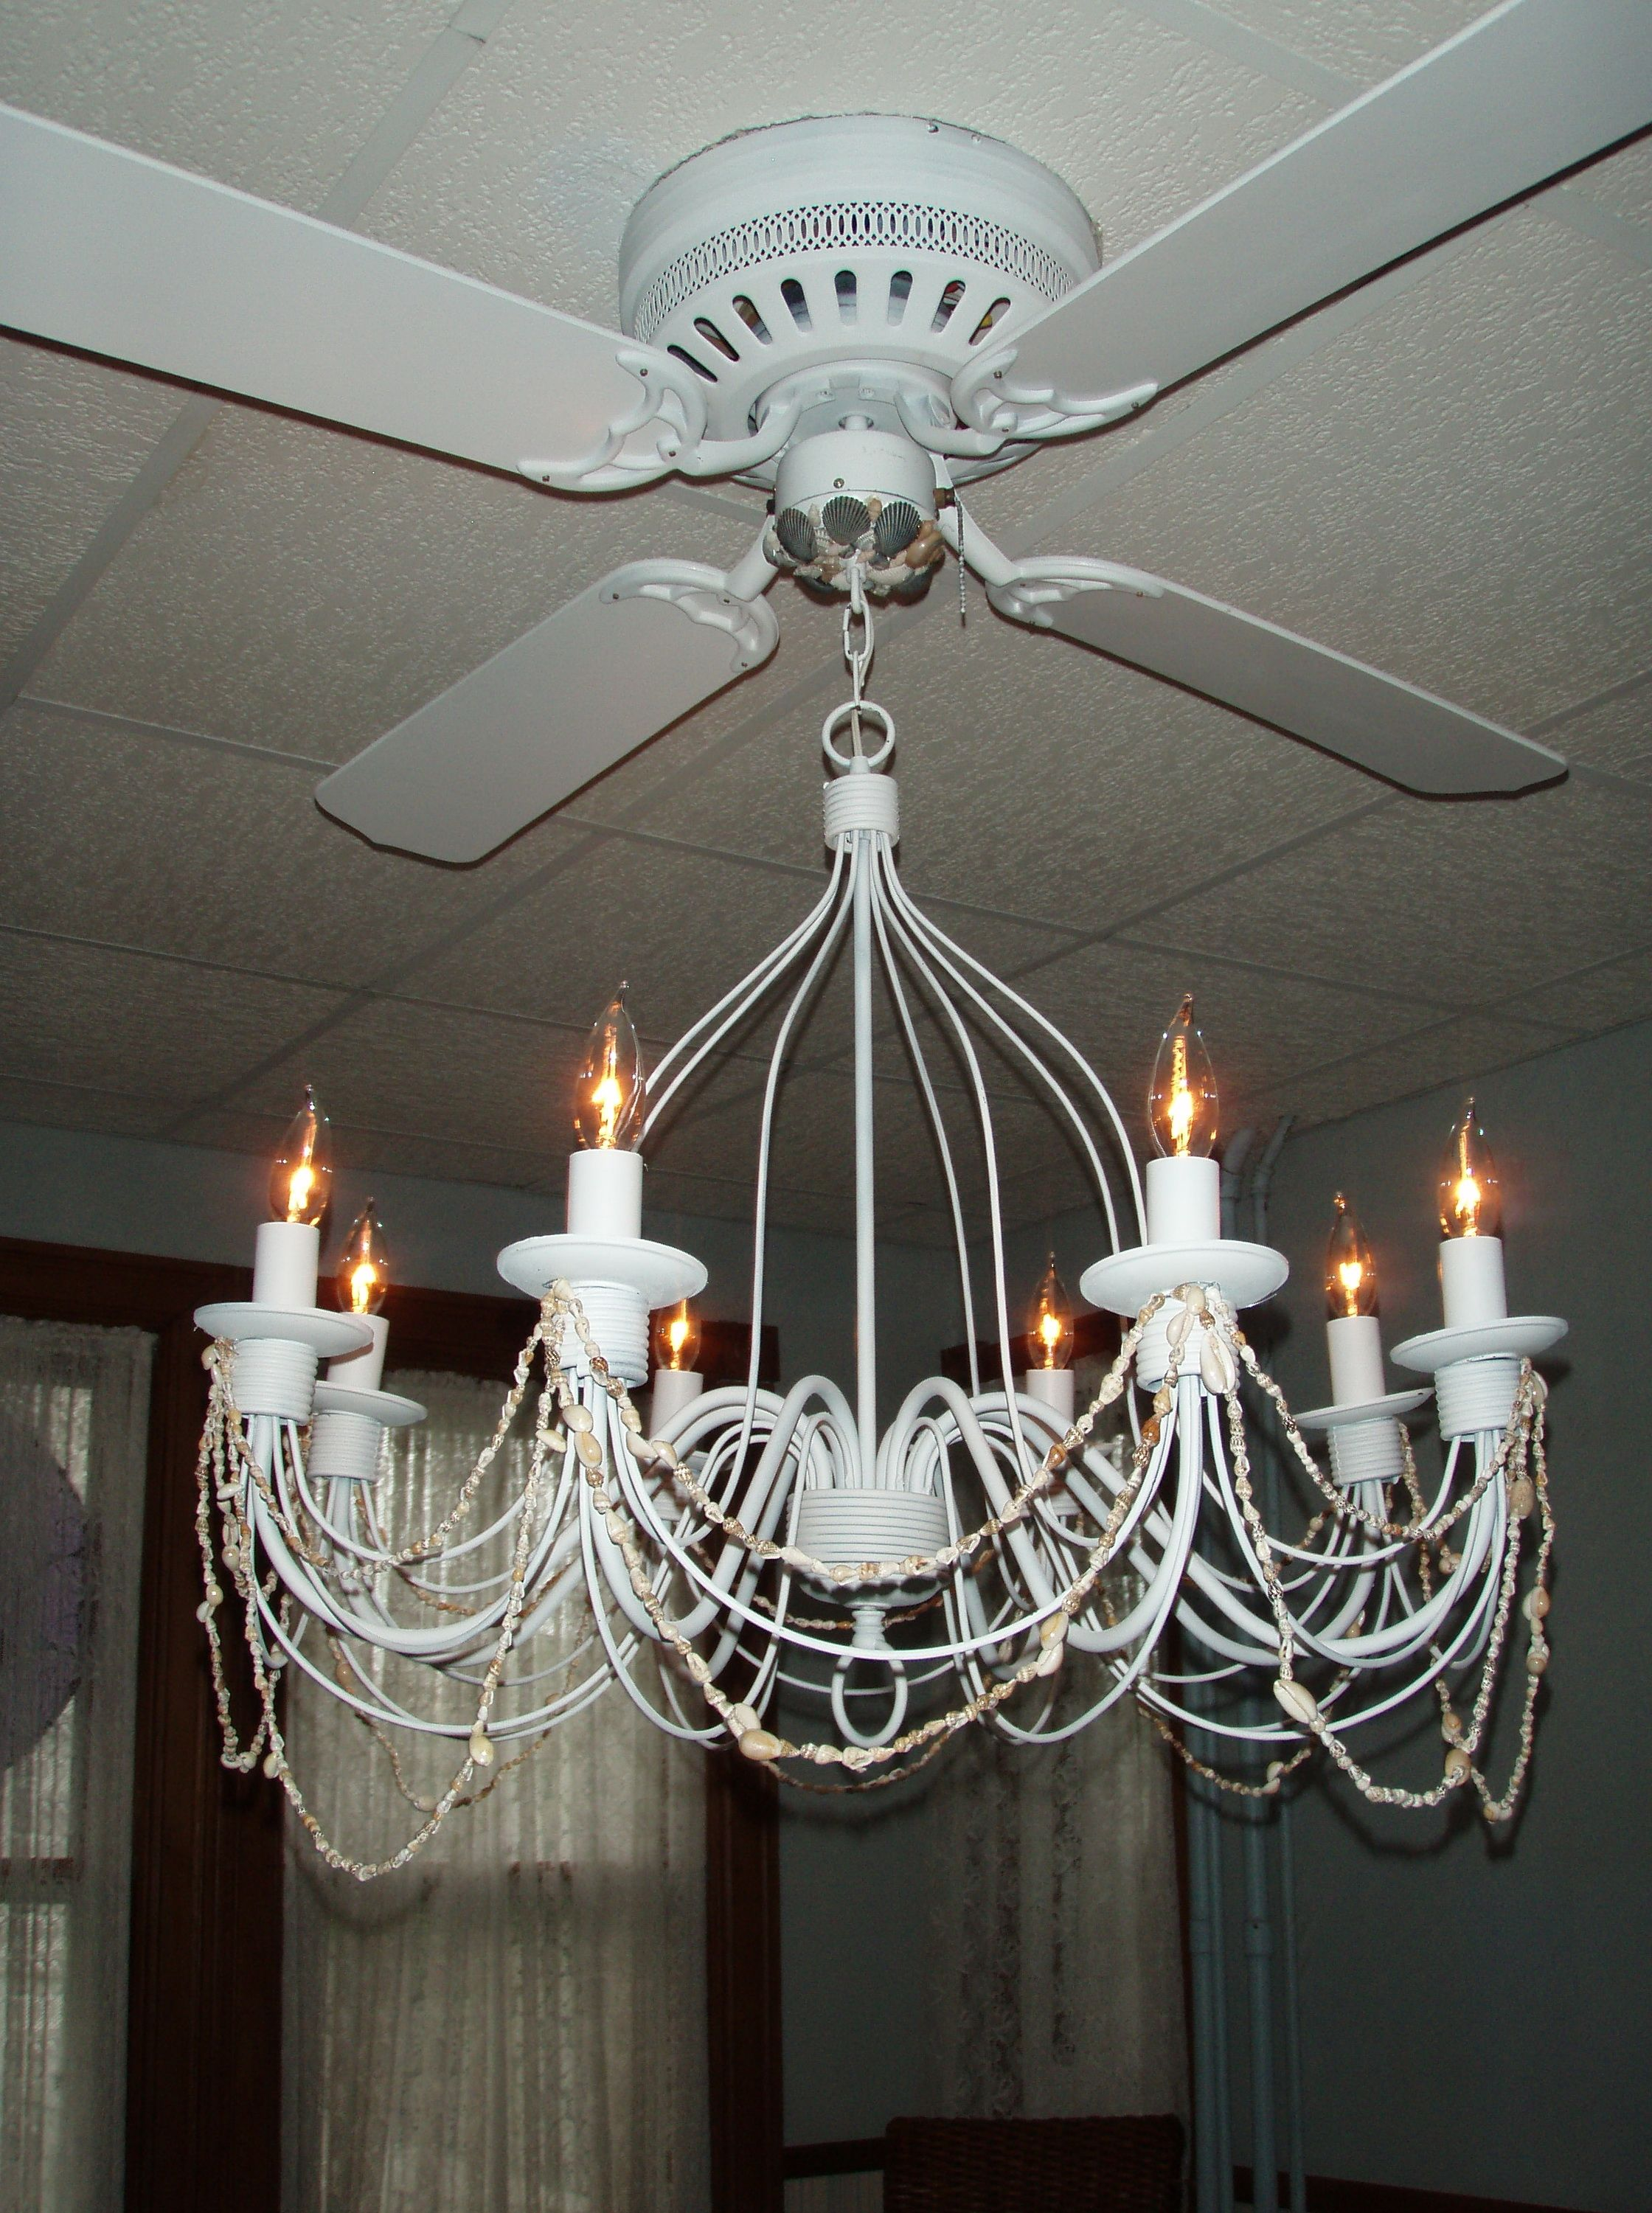 Crystal Chandelier Ceiling Fan bination